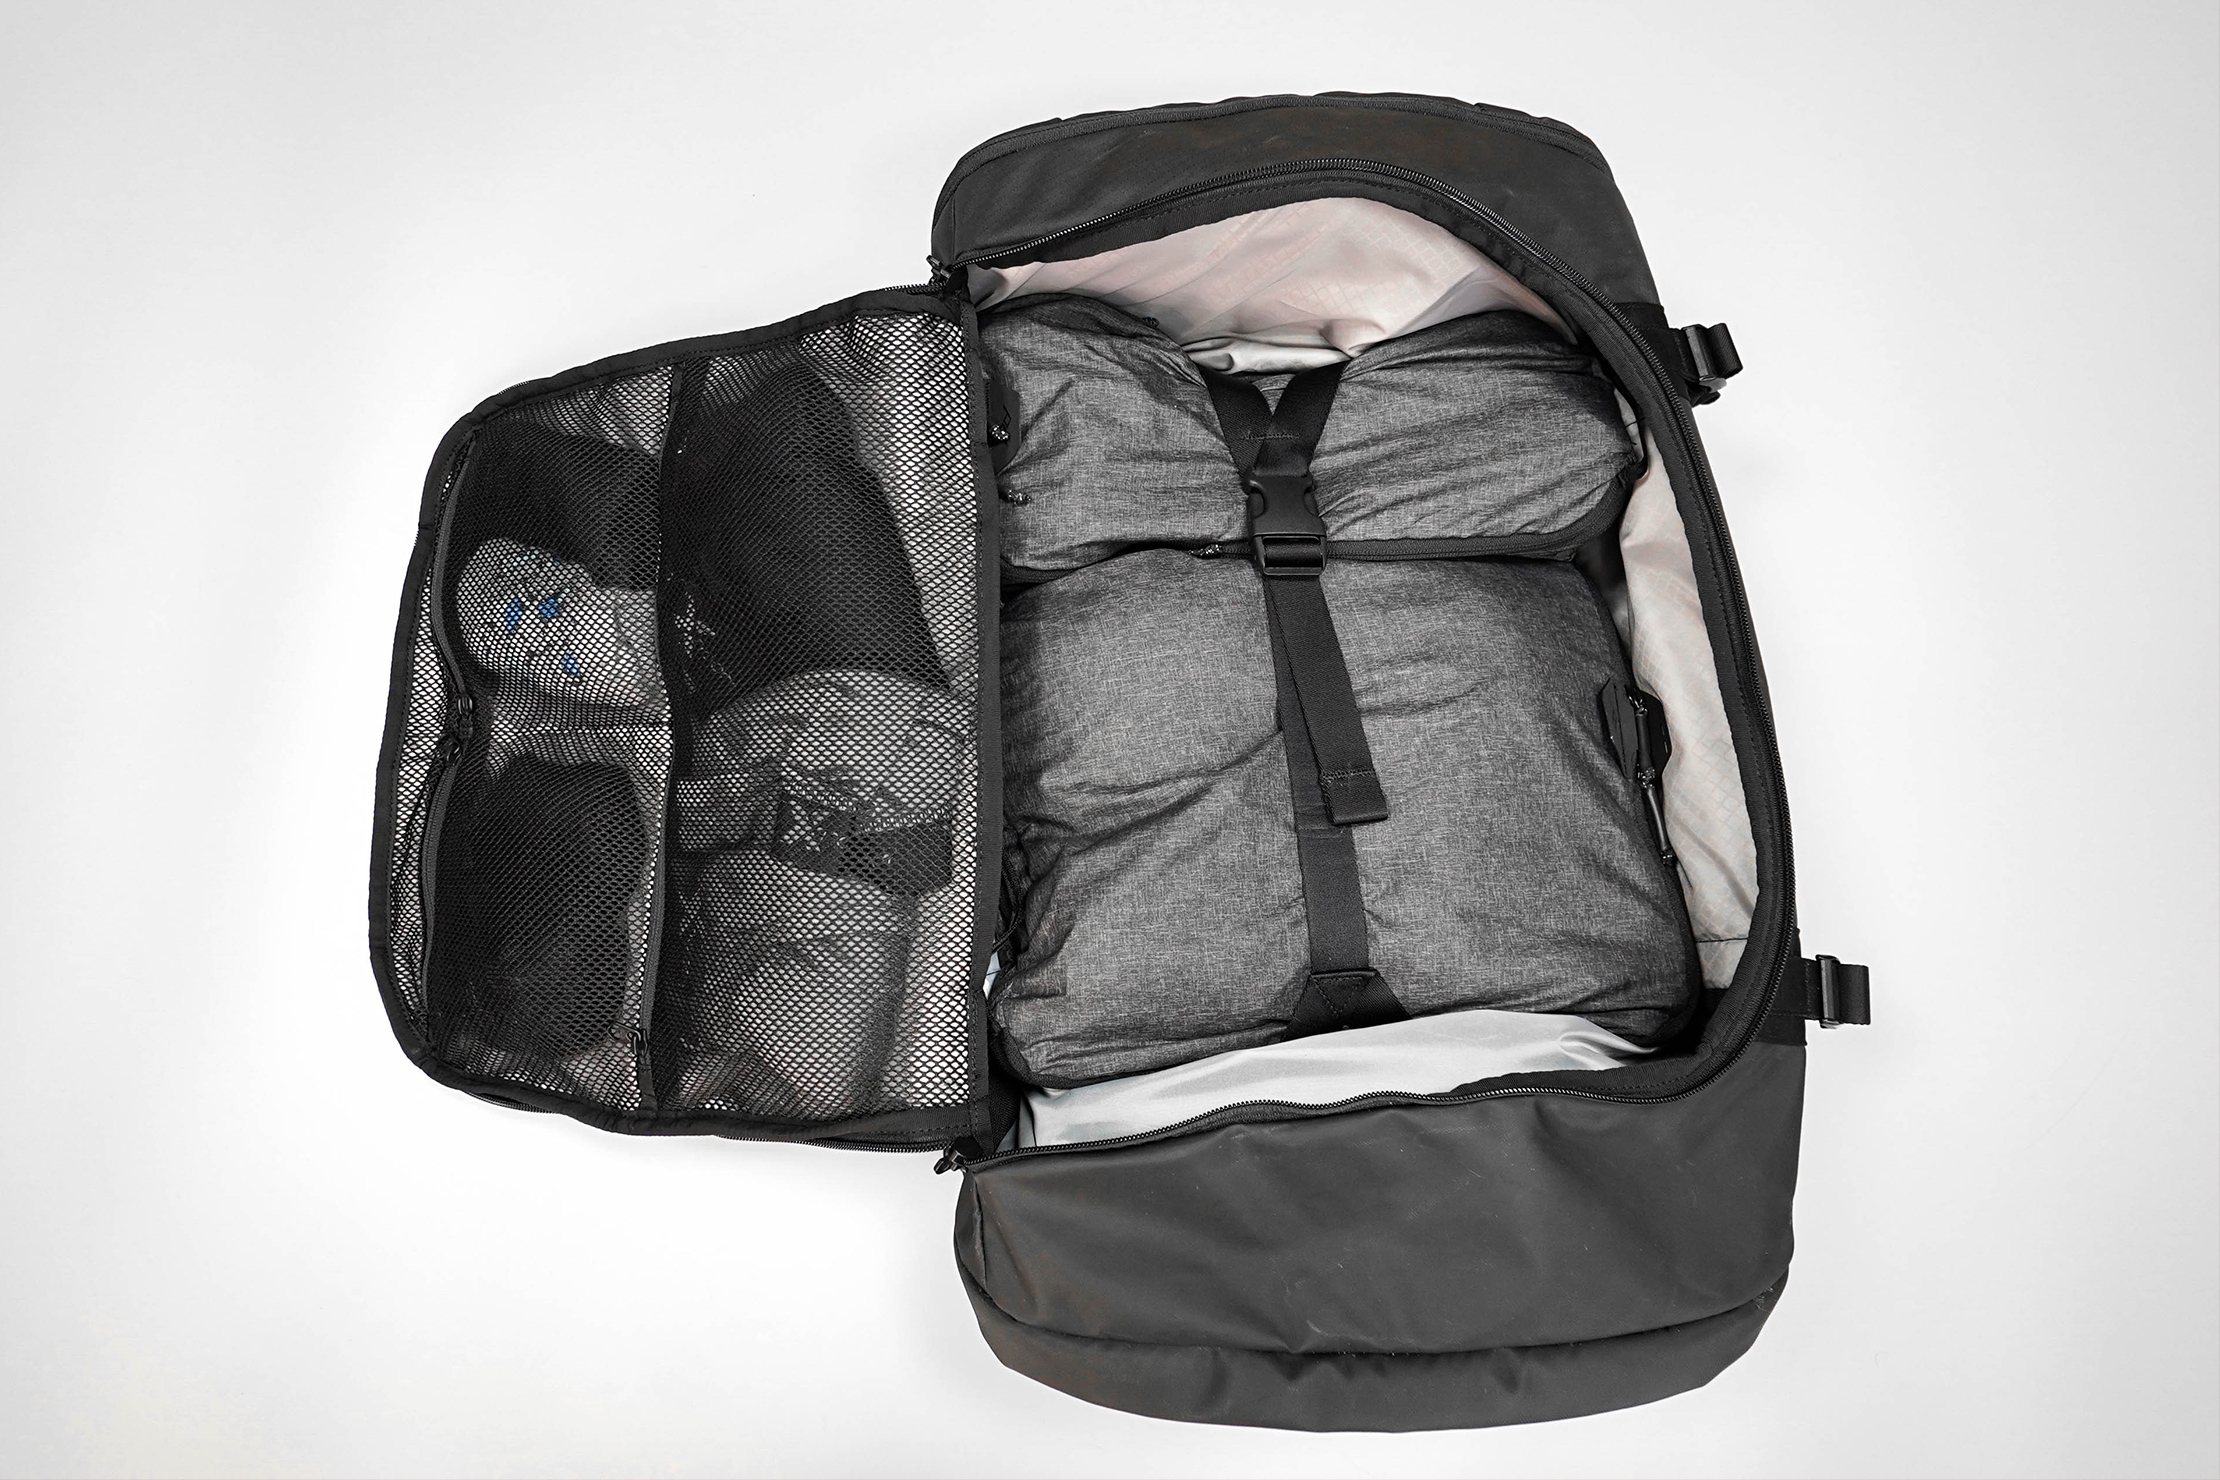 Timbuk2 Impulse Travel Backpack Duffel Packed